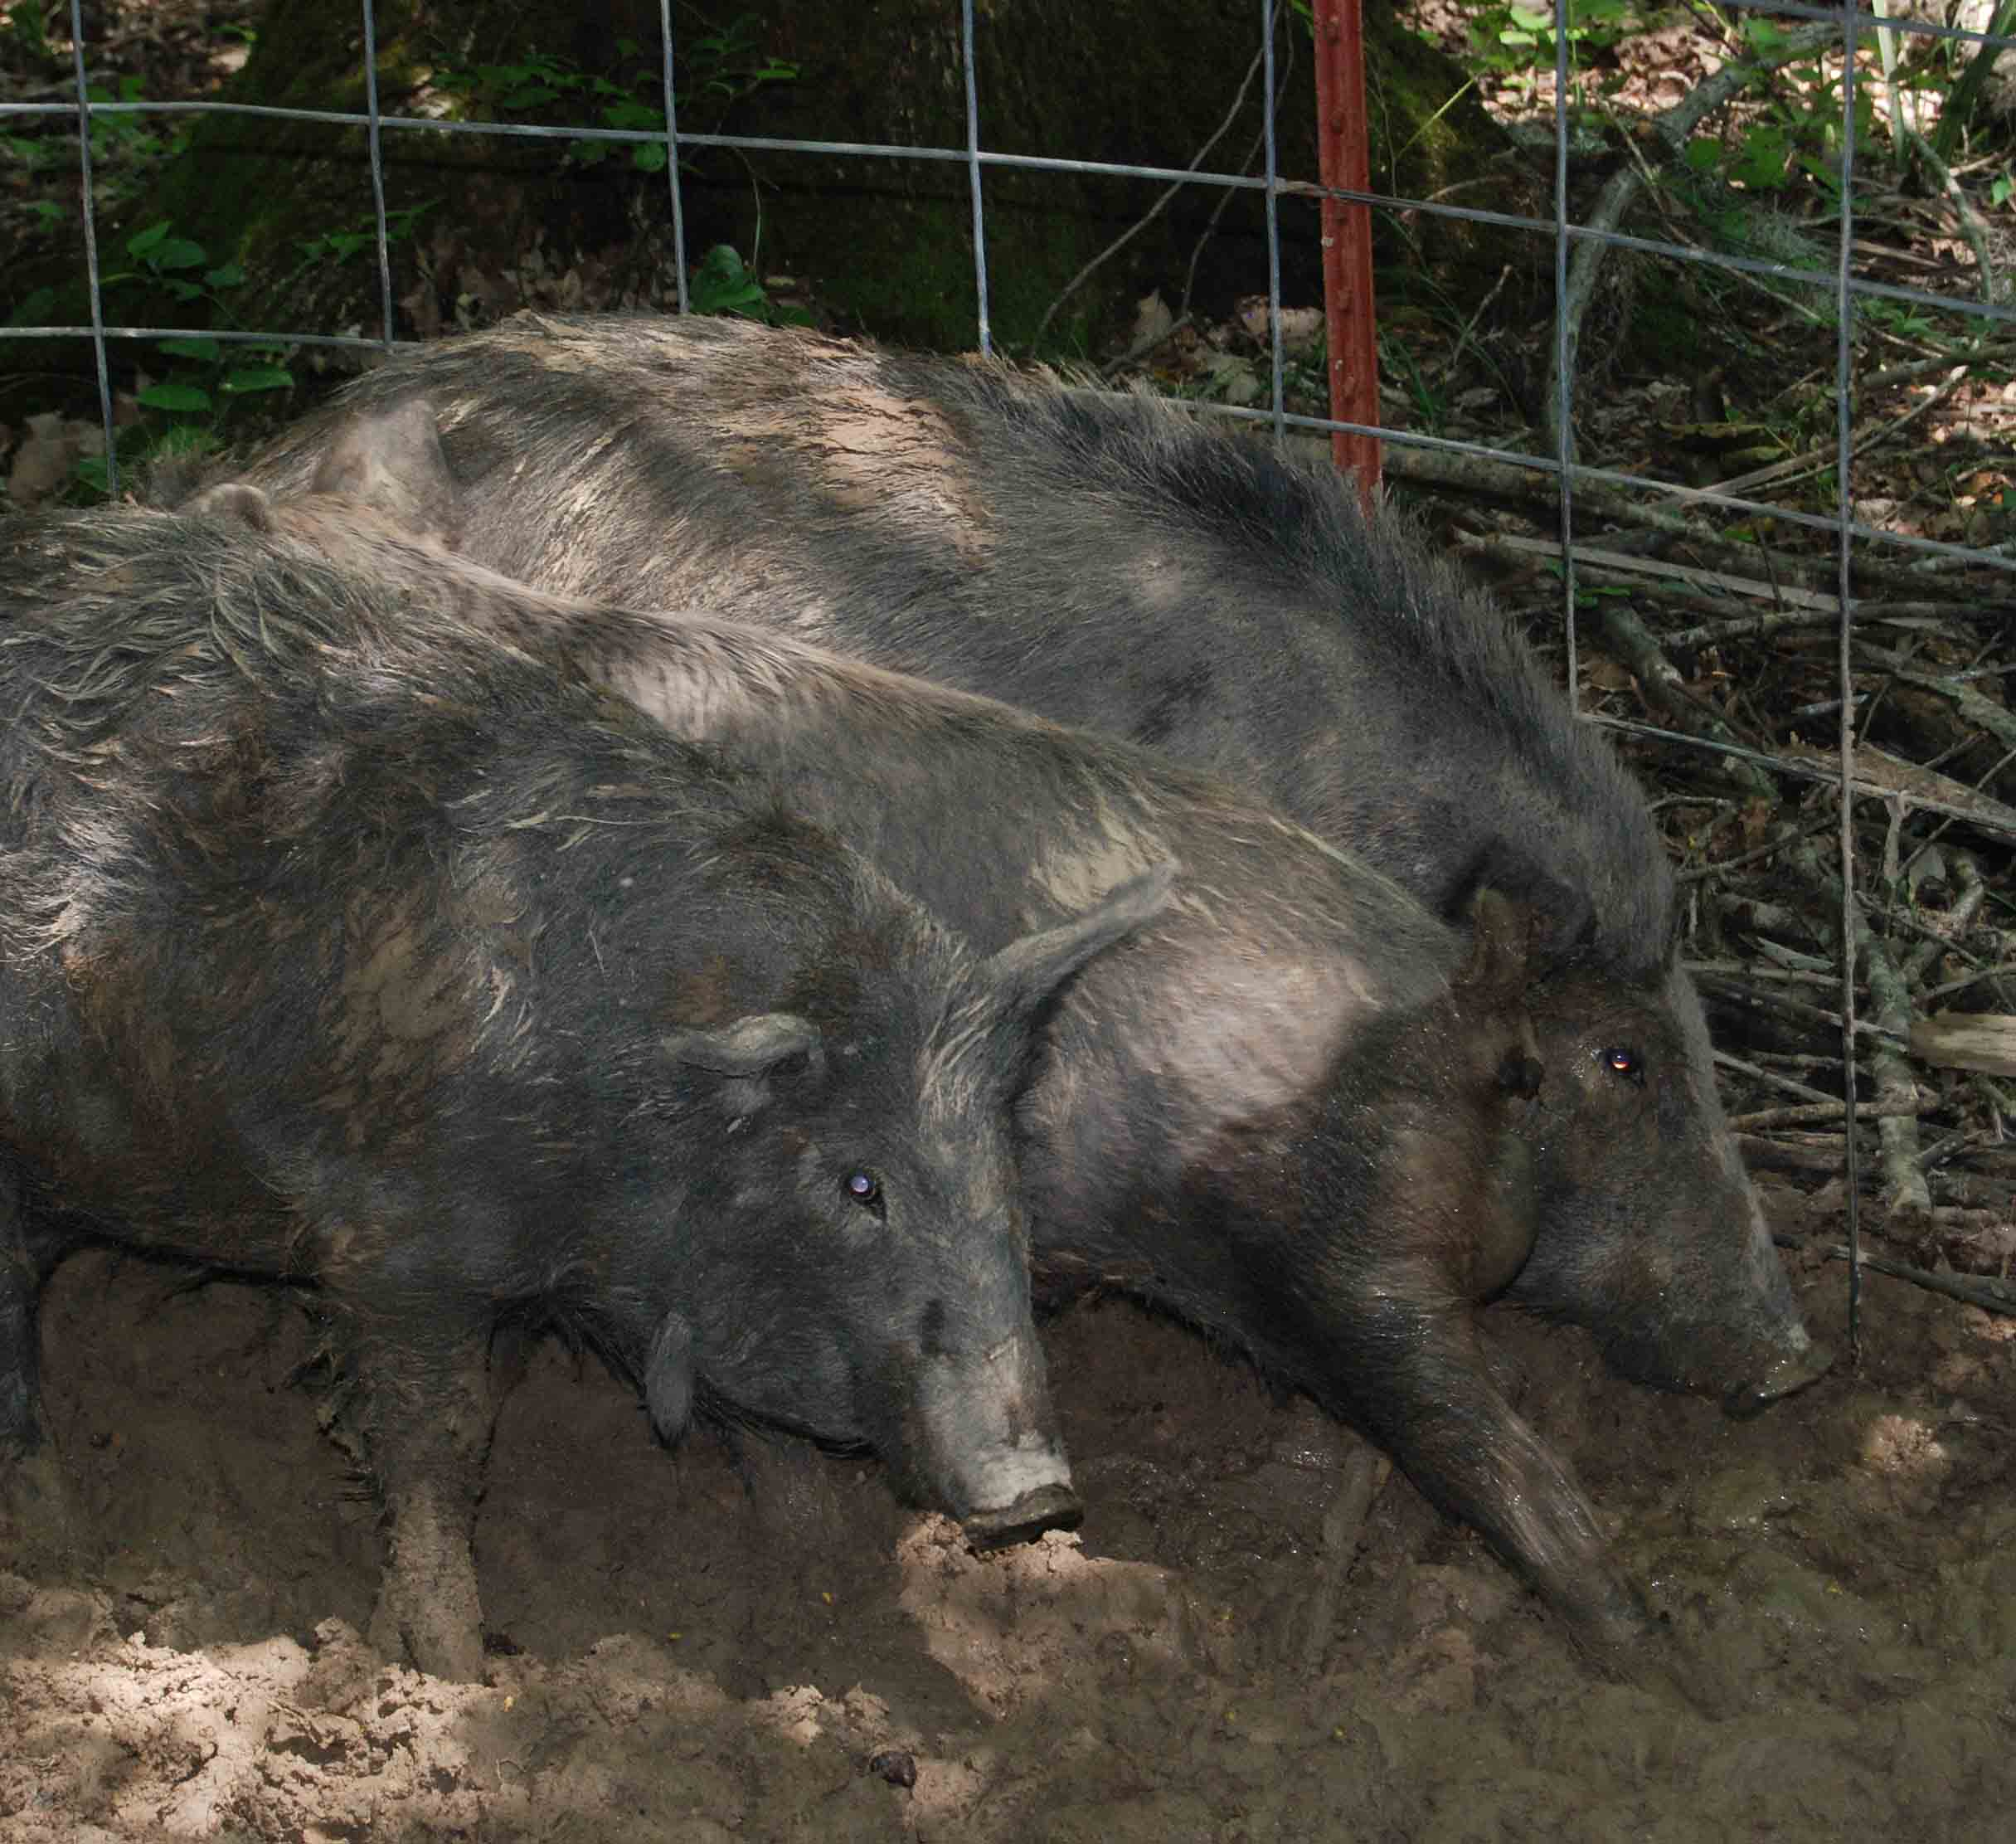 University of Georgia researchers are surveying landowners in Georgia to quantify the economic damage feral swine are causing the state.